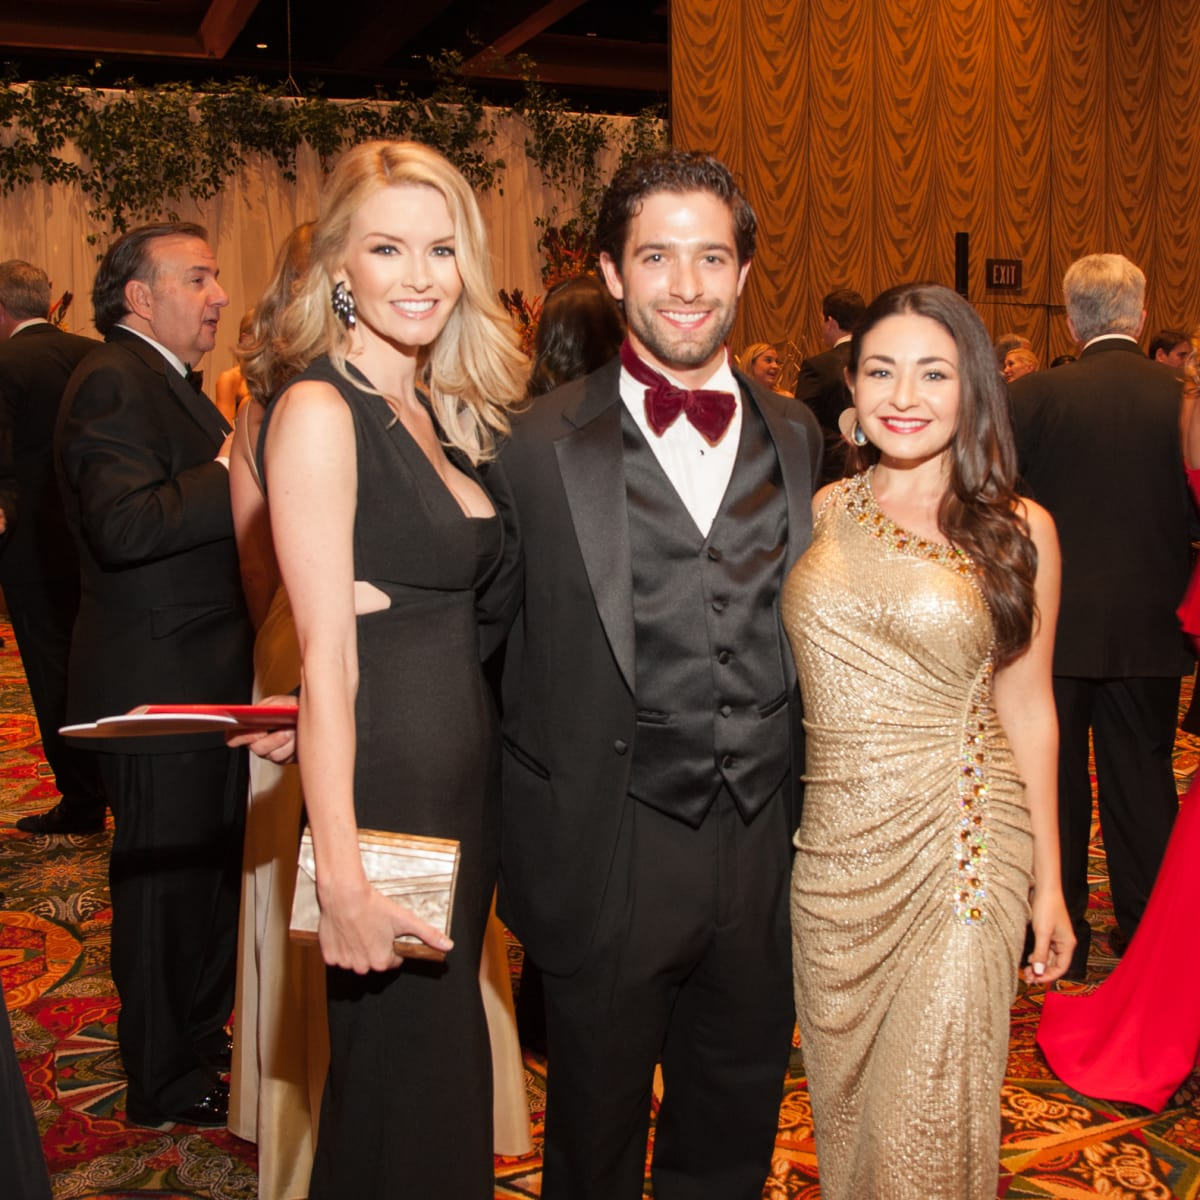 Heart Ball, Feb. 2016, Amanda Weiser, Chad Solomon, Bella Barak